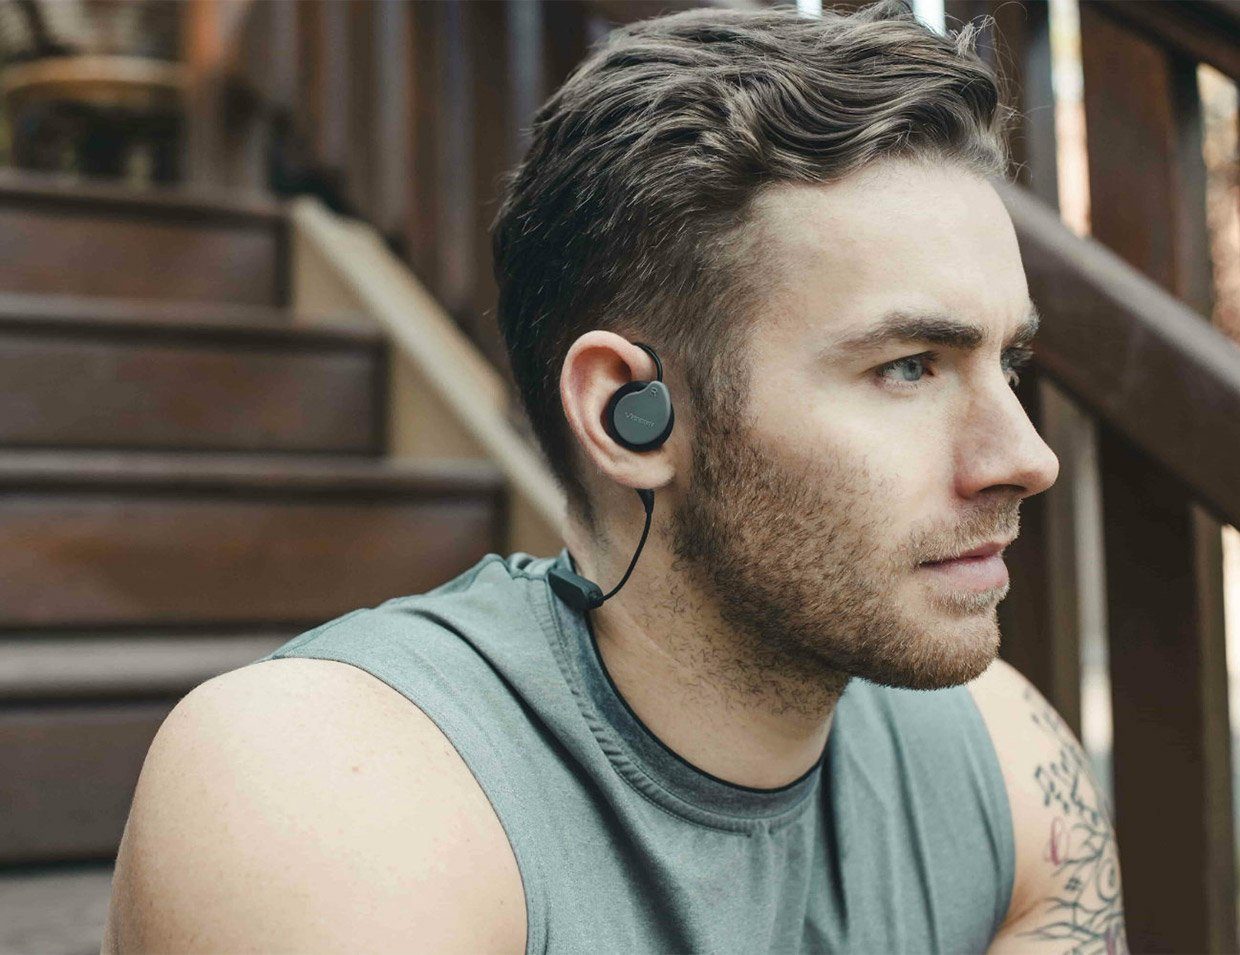 Versafit Wireless Sport Headphones